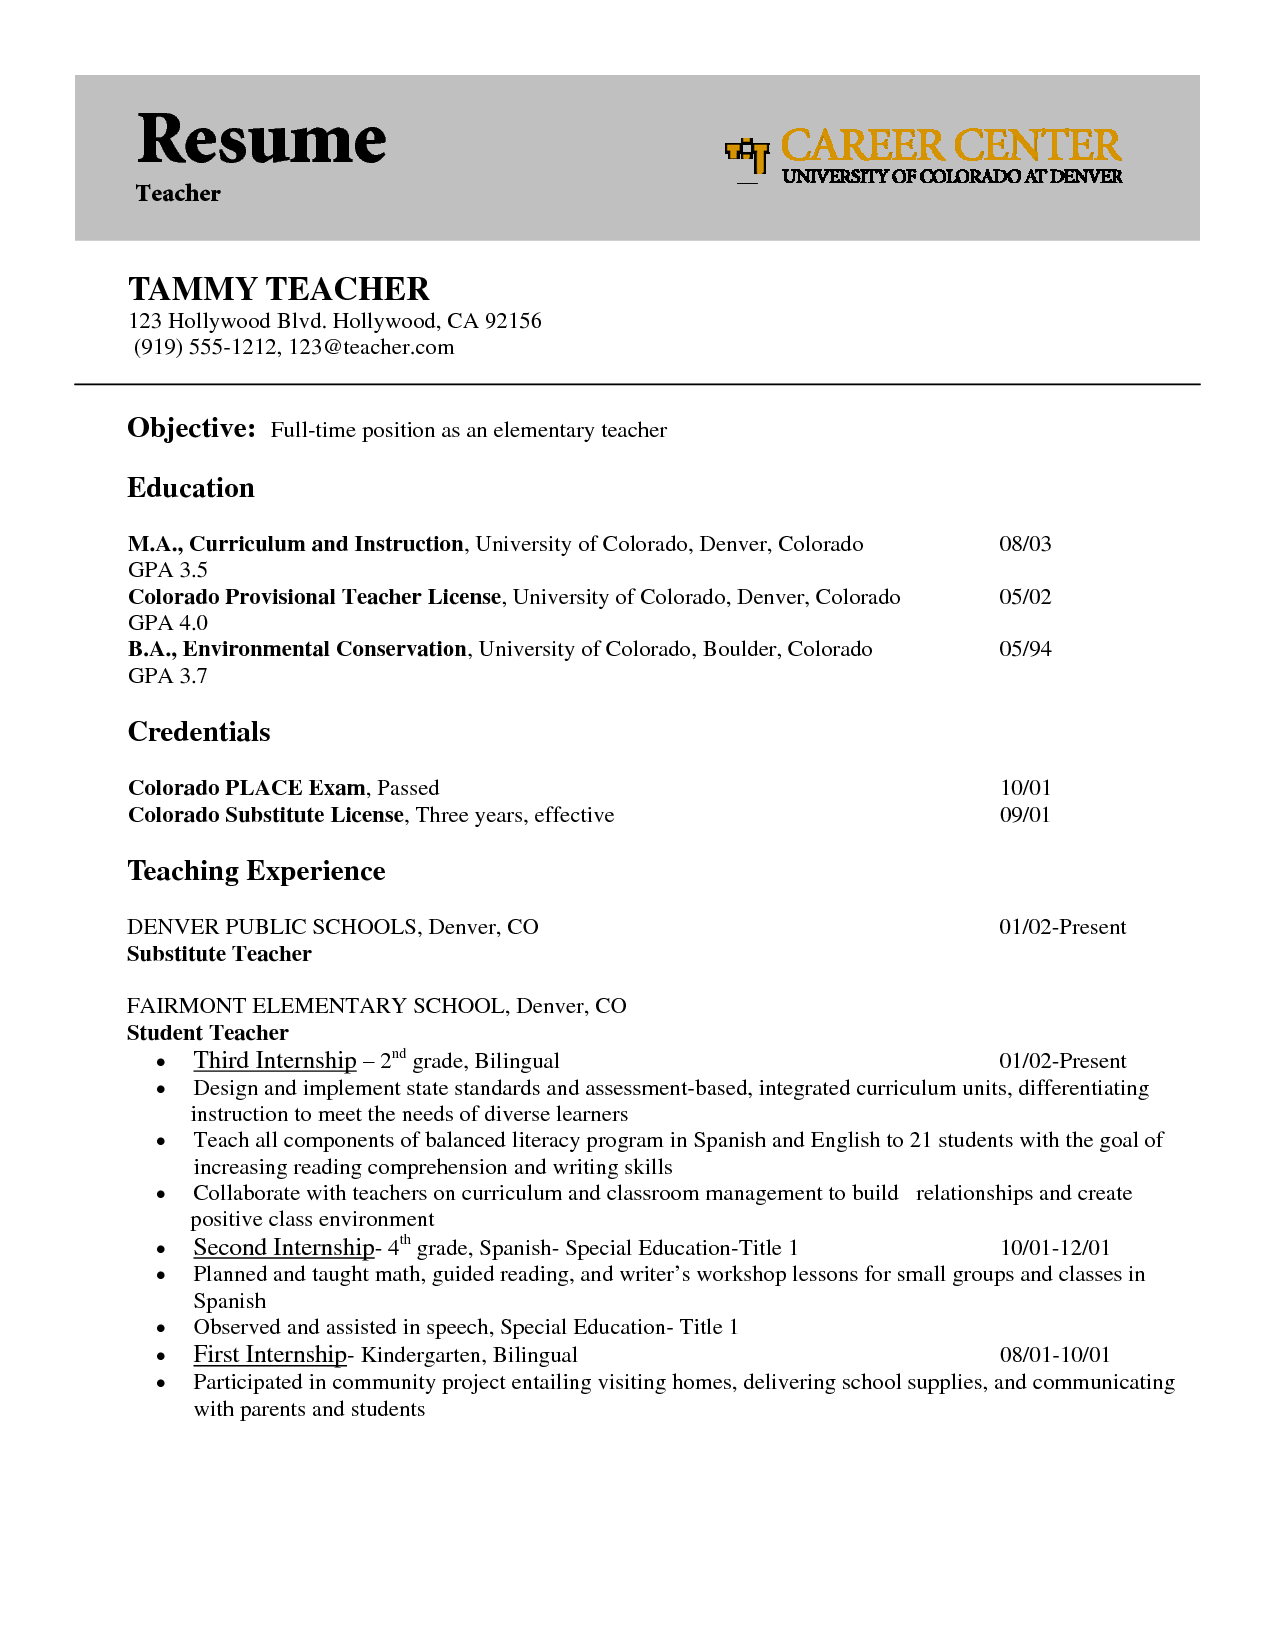 How To Write An Effective Cover Letter Teacher Cover Letters With Experiencejob Hunting Write A Great